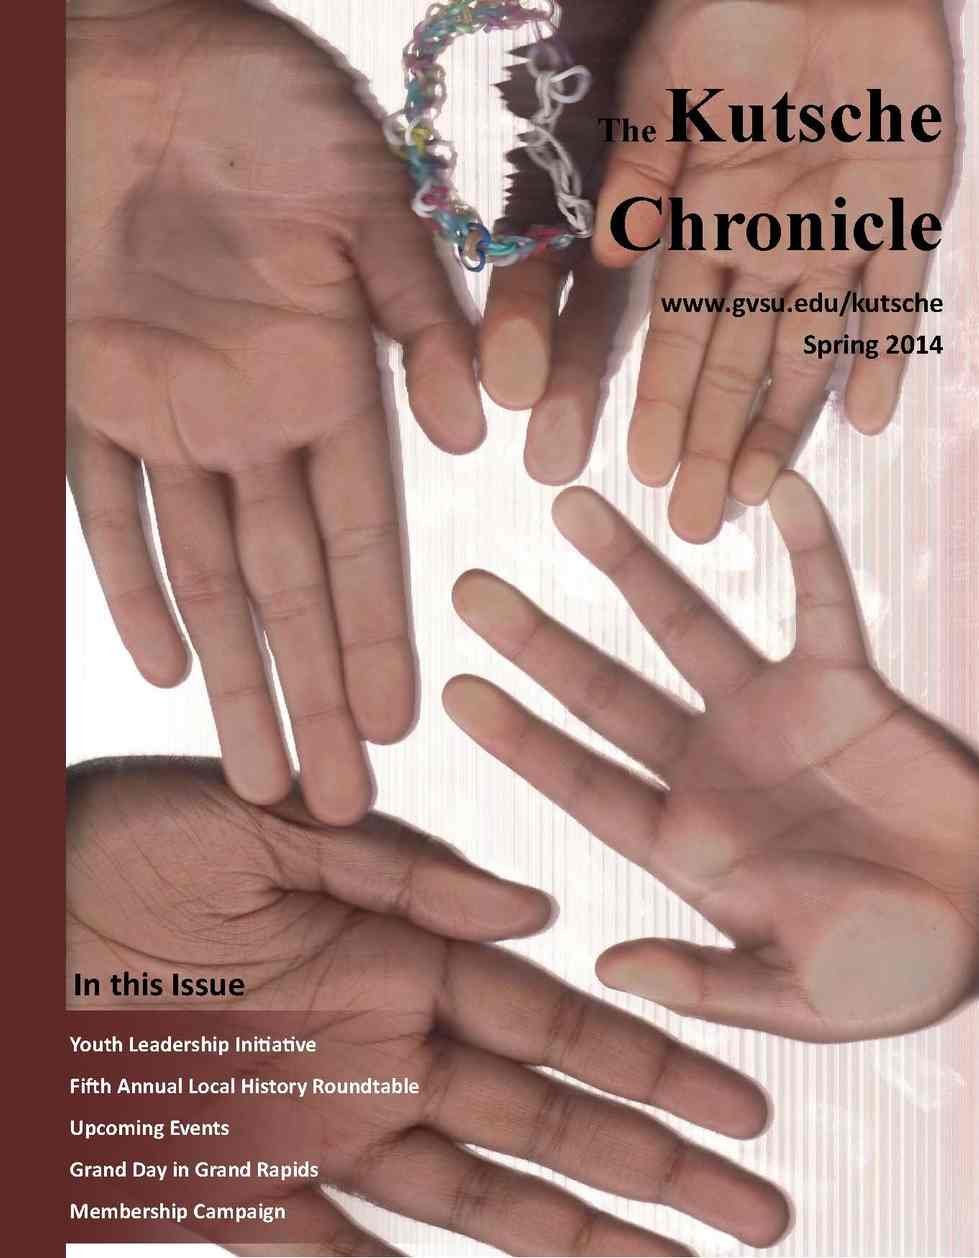 Spring 2014 Kutsche Chronicle